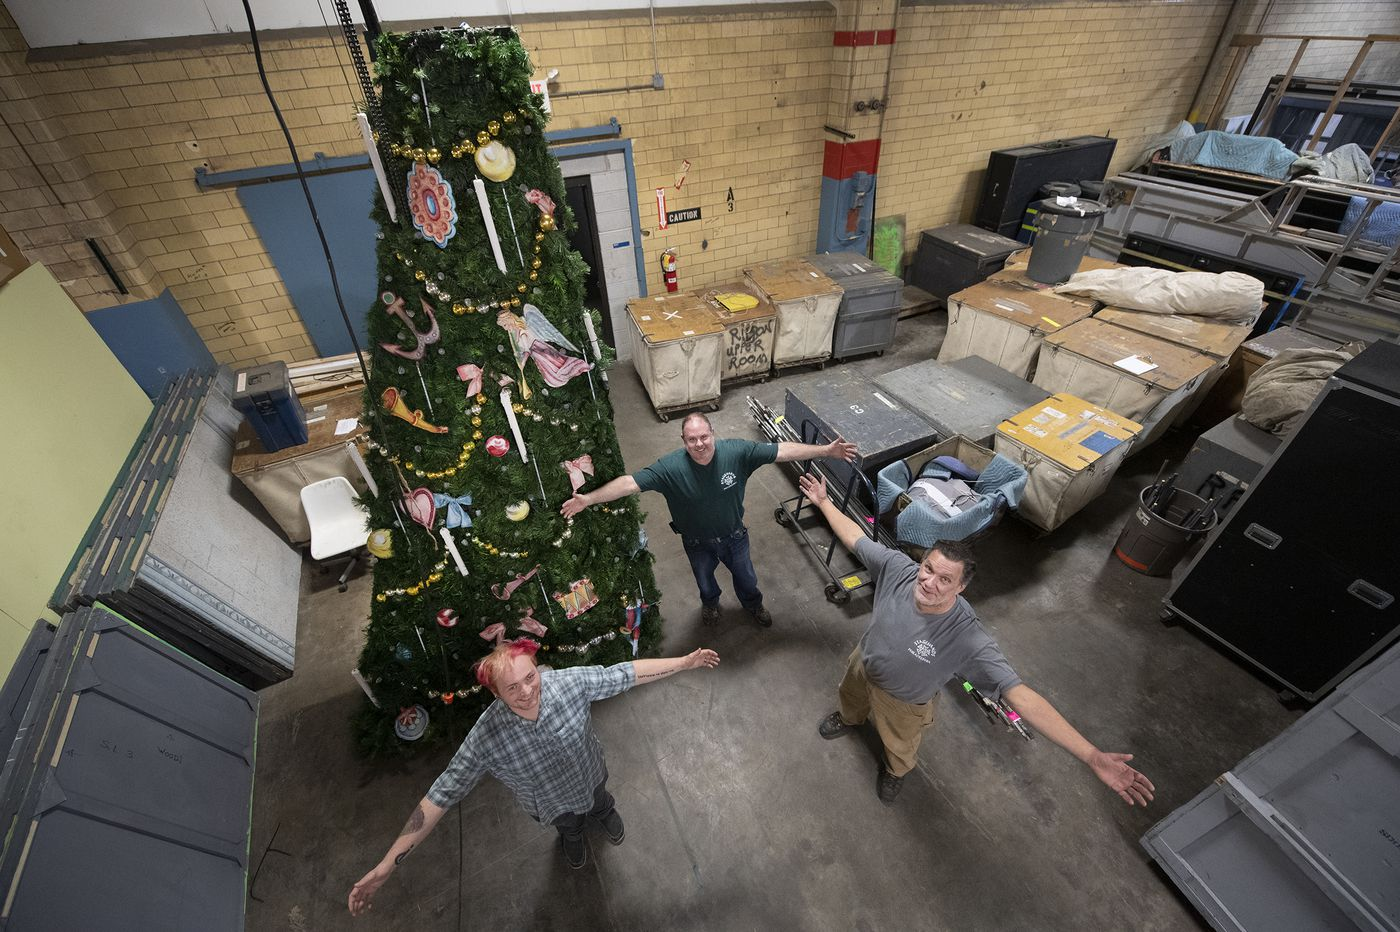 Pa. Ballet's Sharon Hill Warehouse Holds A Lot of 'Nutcracker' Magic, Including a Renovated Christmas Tree